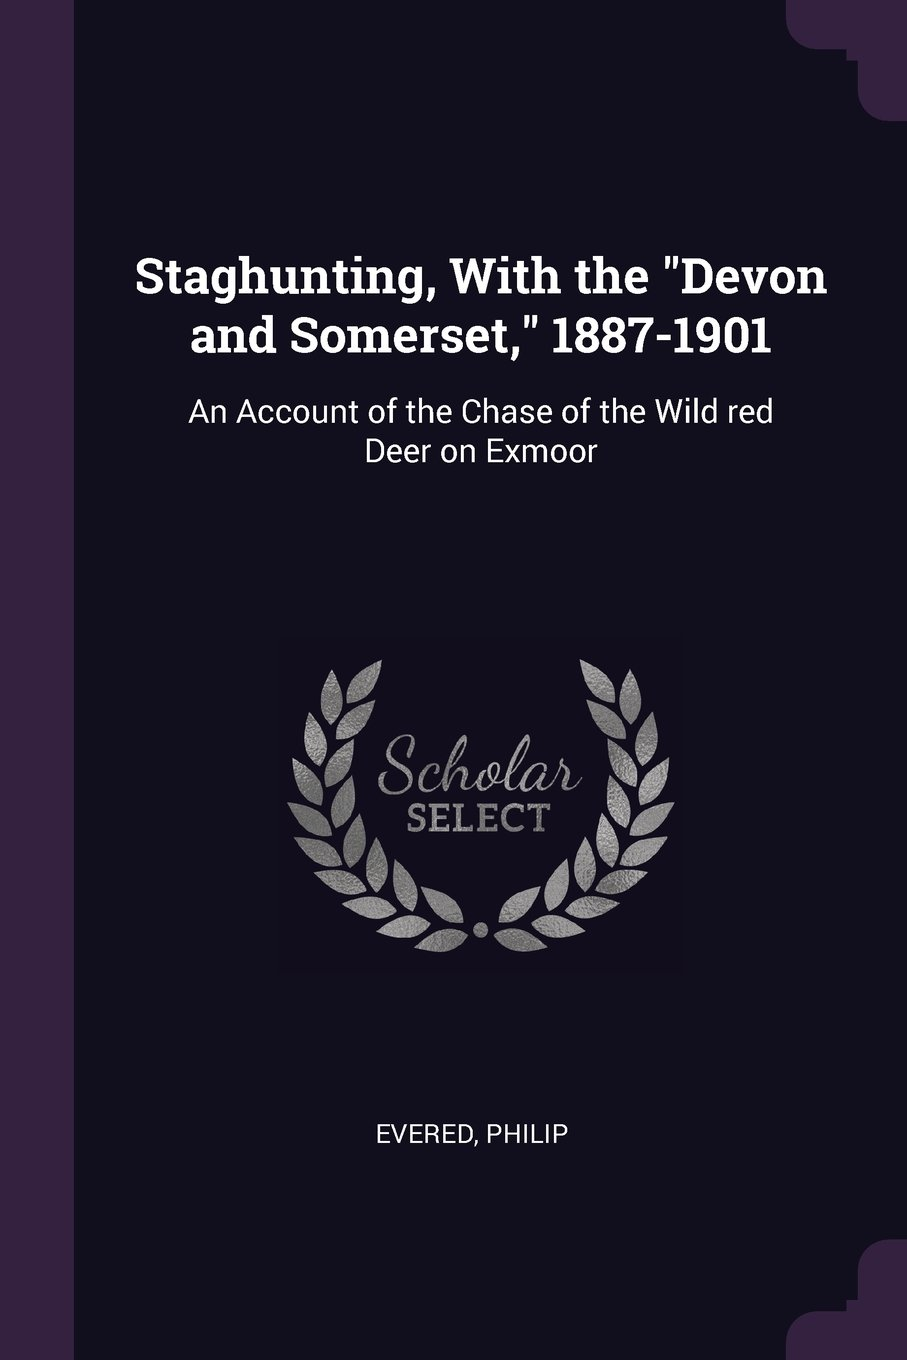 Staghunting, with the Devon and Somerset, 1887-1901: An Account of the Chase of the Wild Red Deer on Exmoor ebook